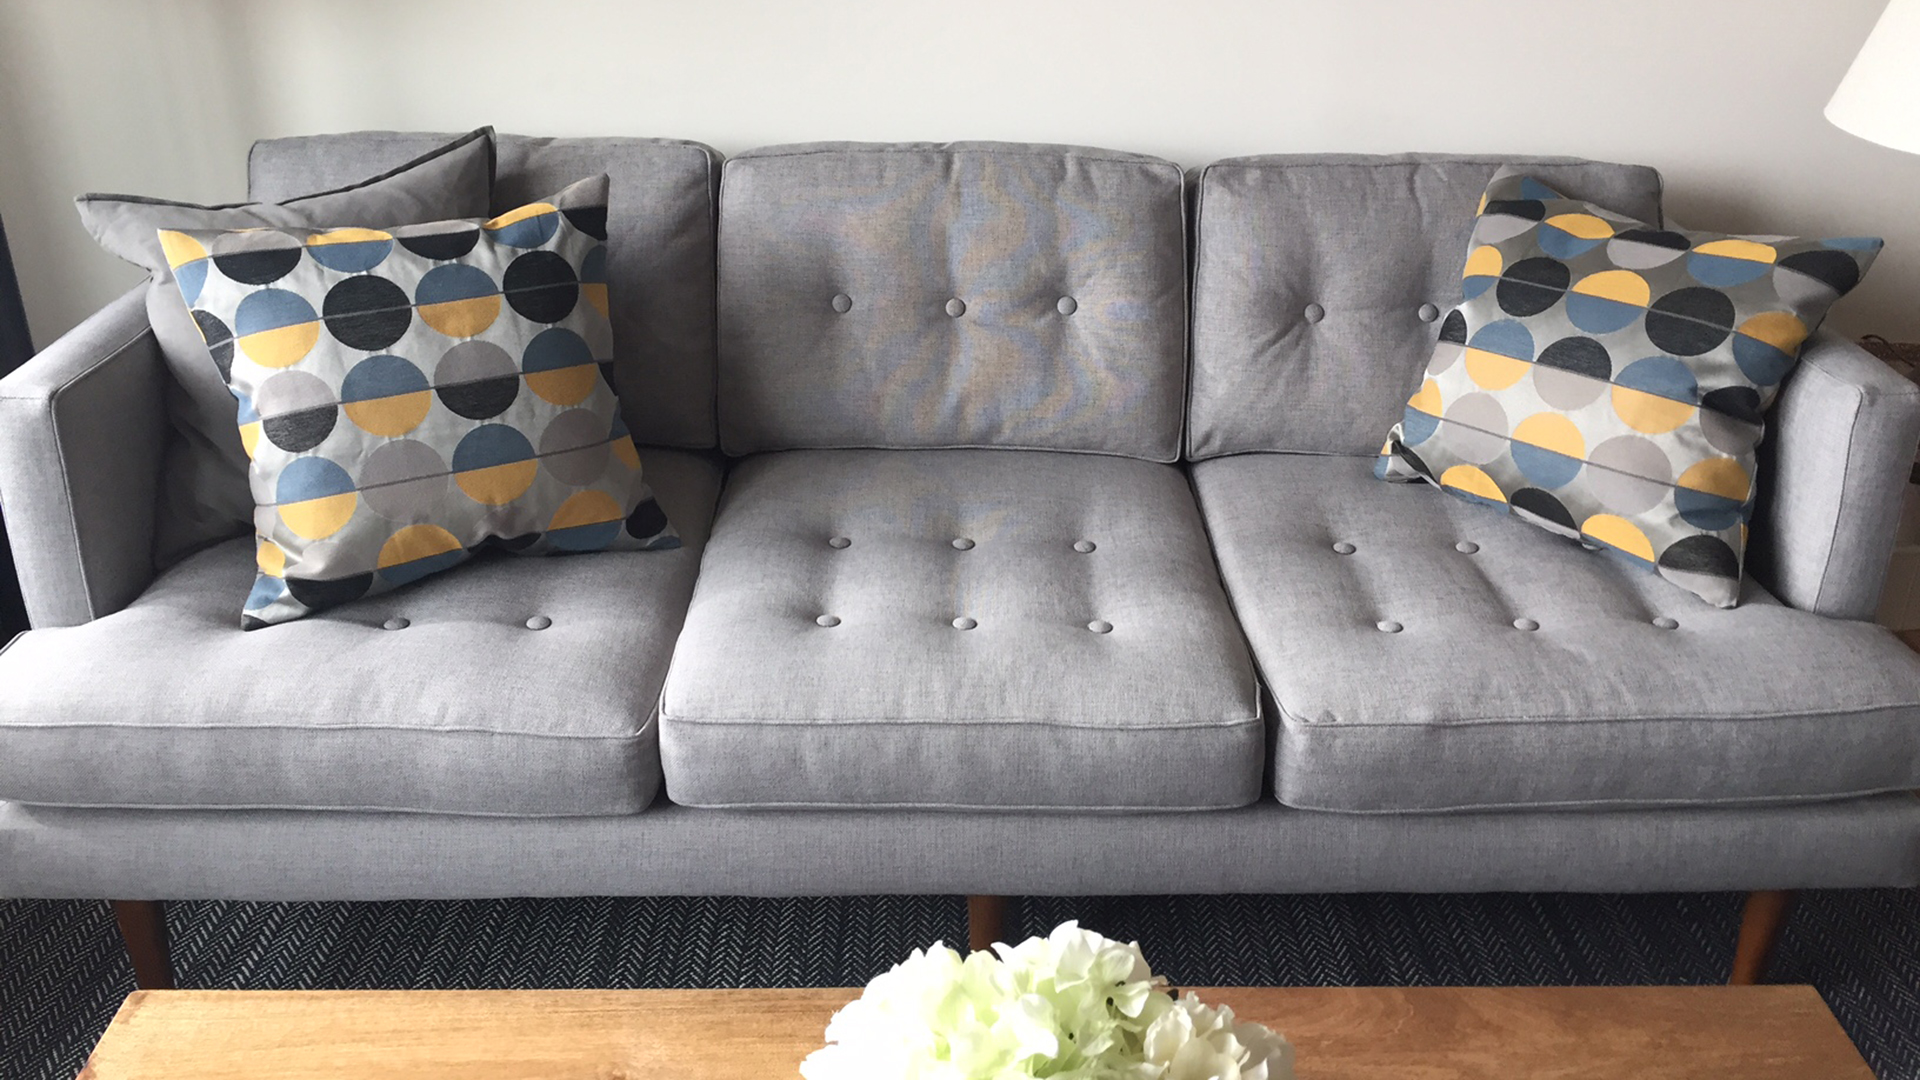 West Elm Peggy sofa taken off website TODAY